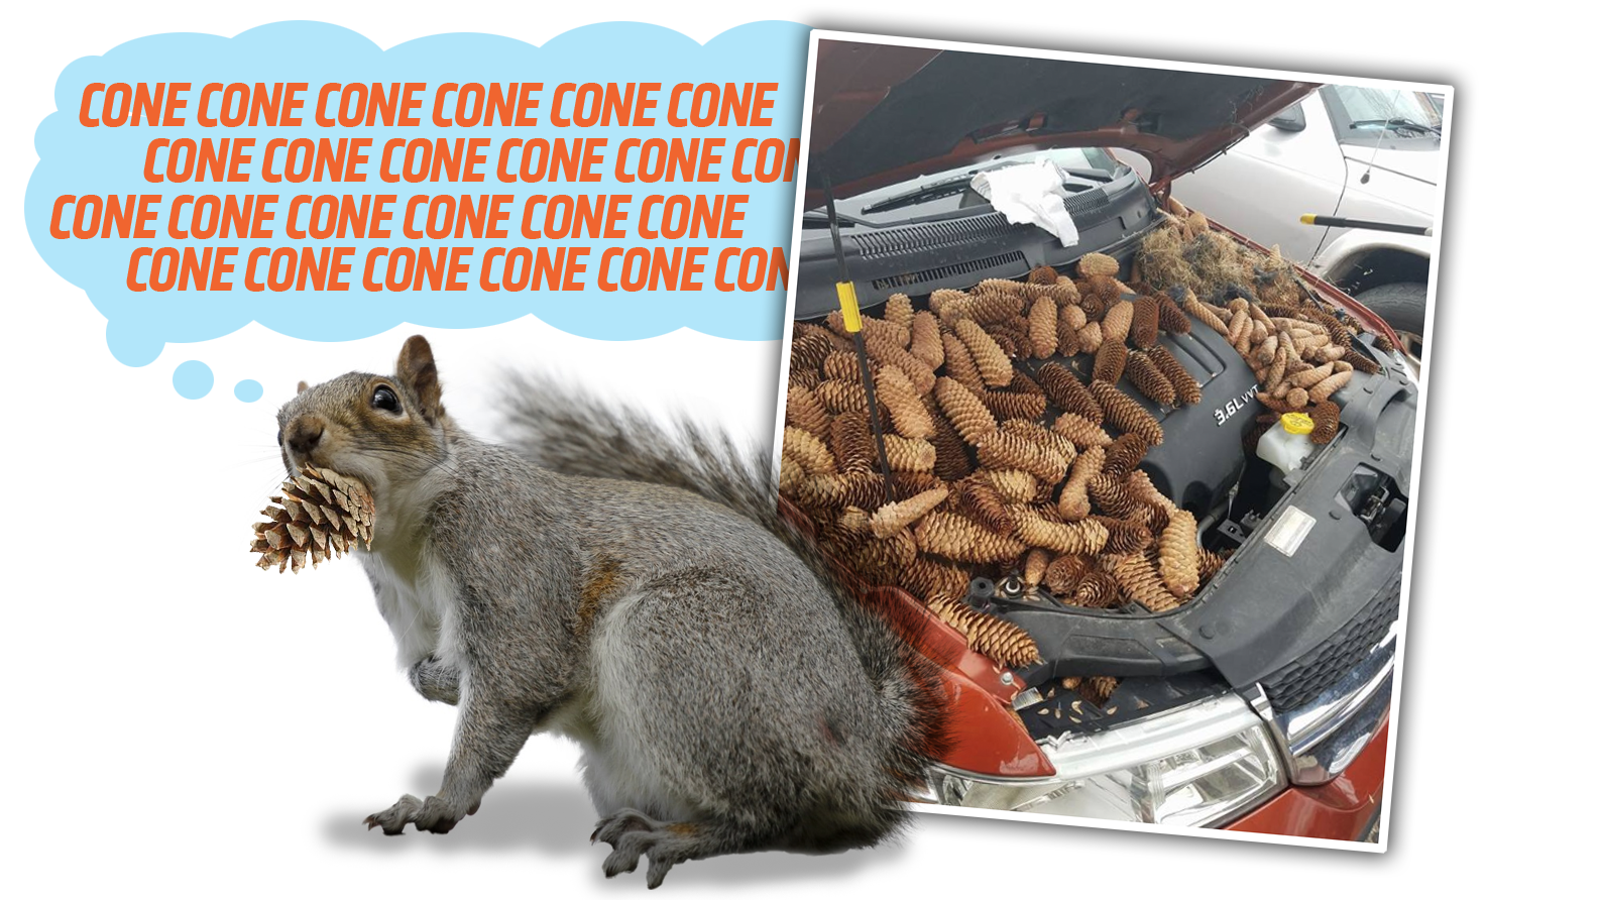 Pine Cone-Junkie Squirrel Shoves Over 50 Pounds Of Pine Cones Into Car's Engine Bay